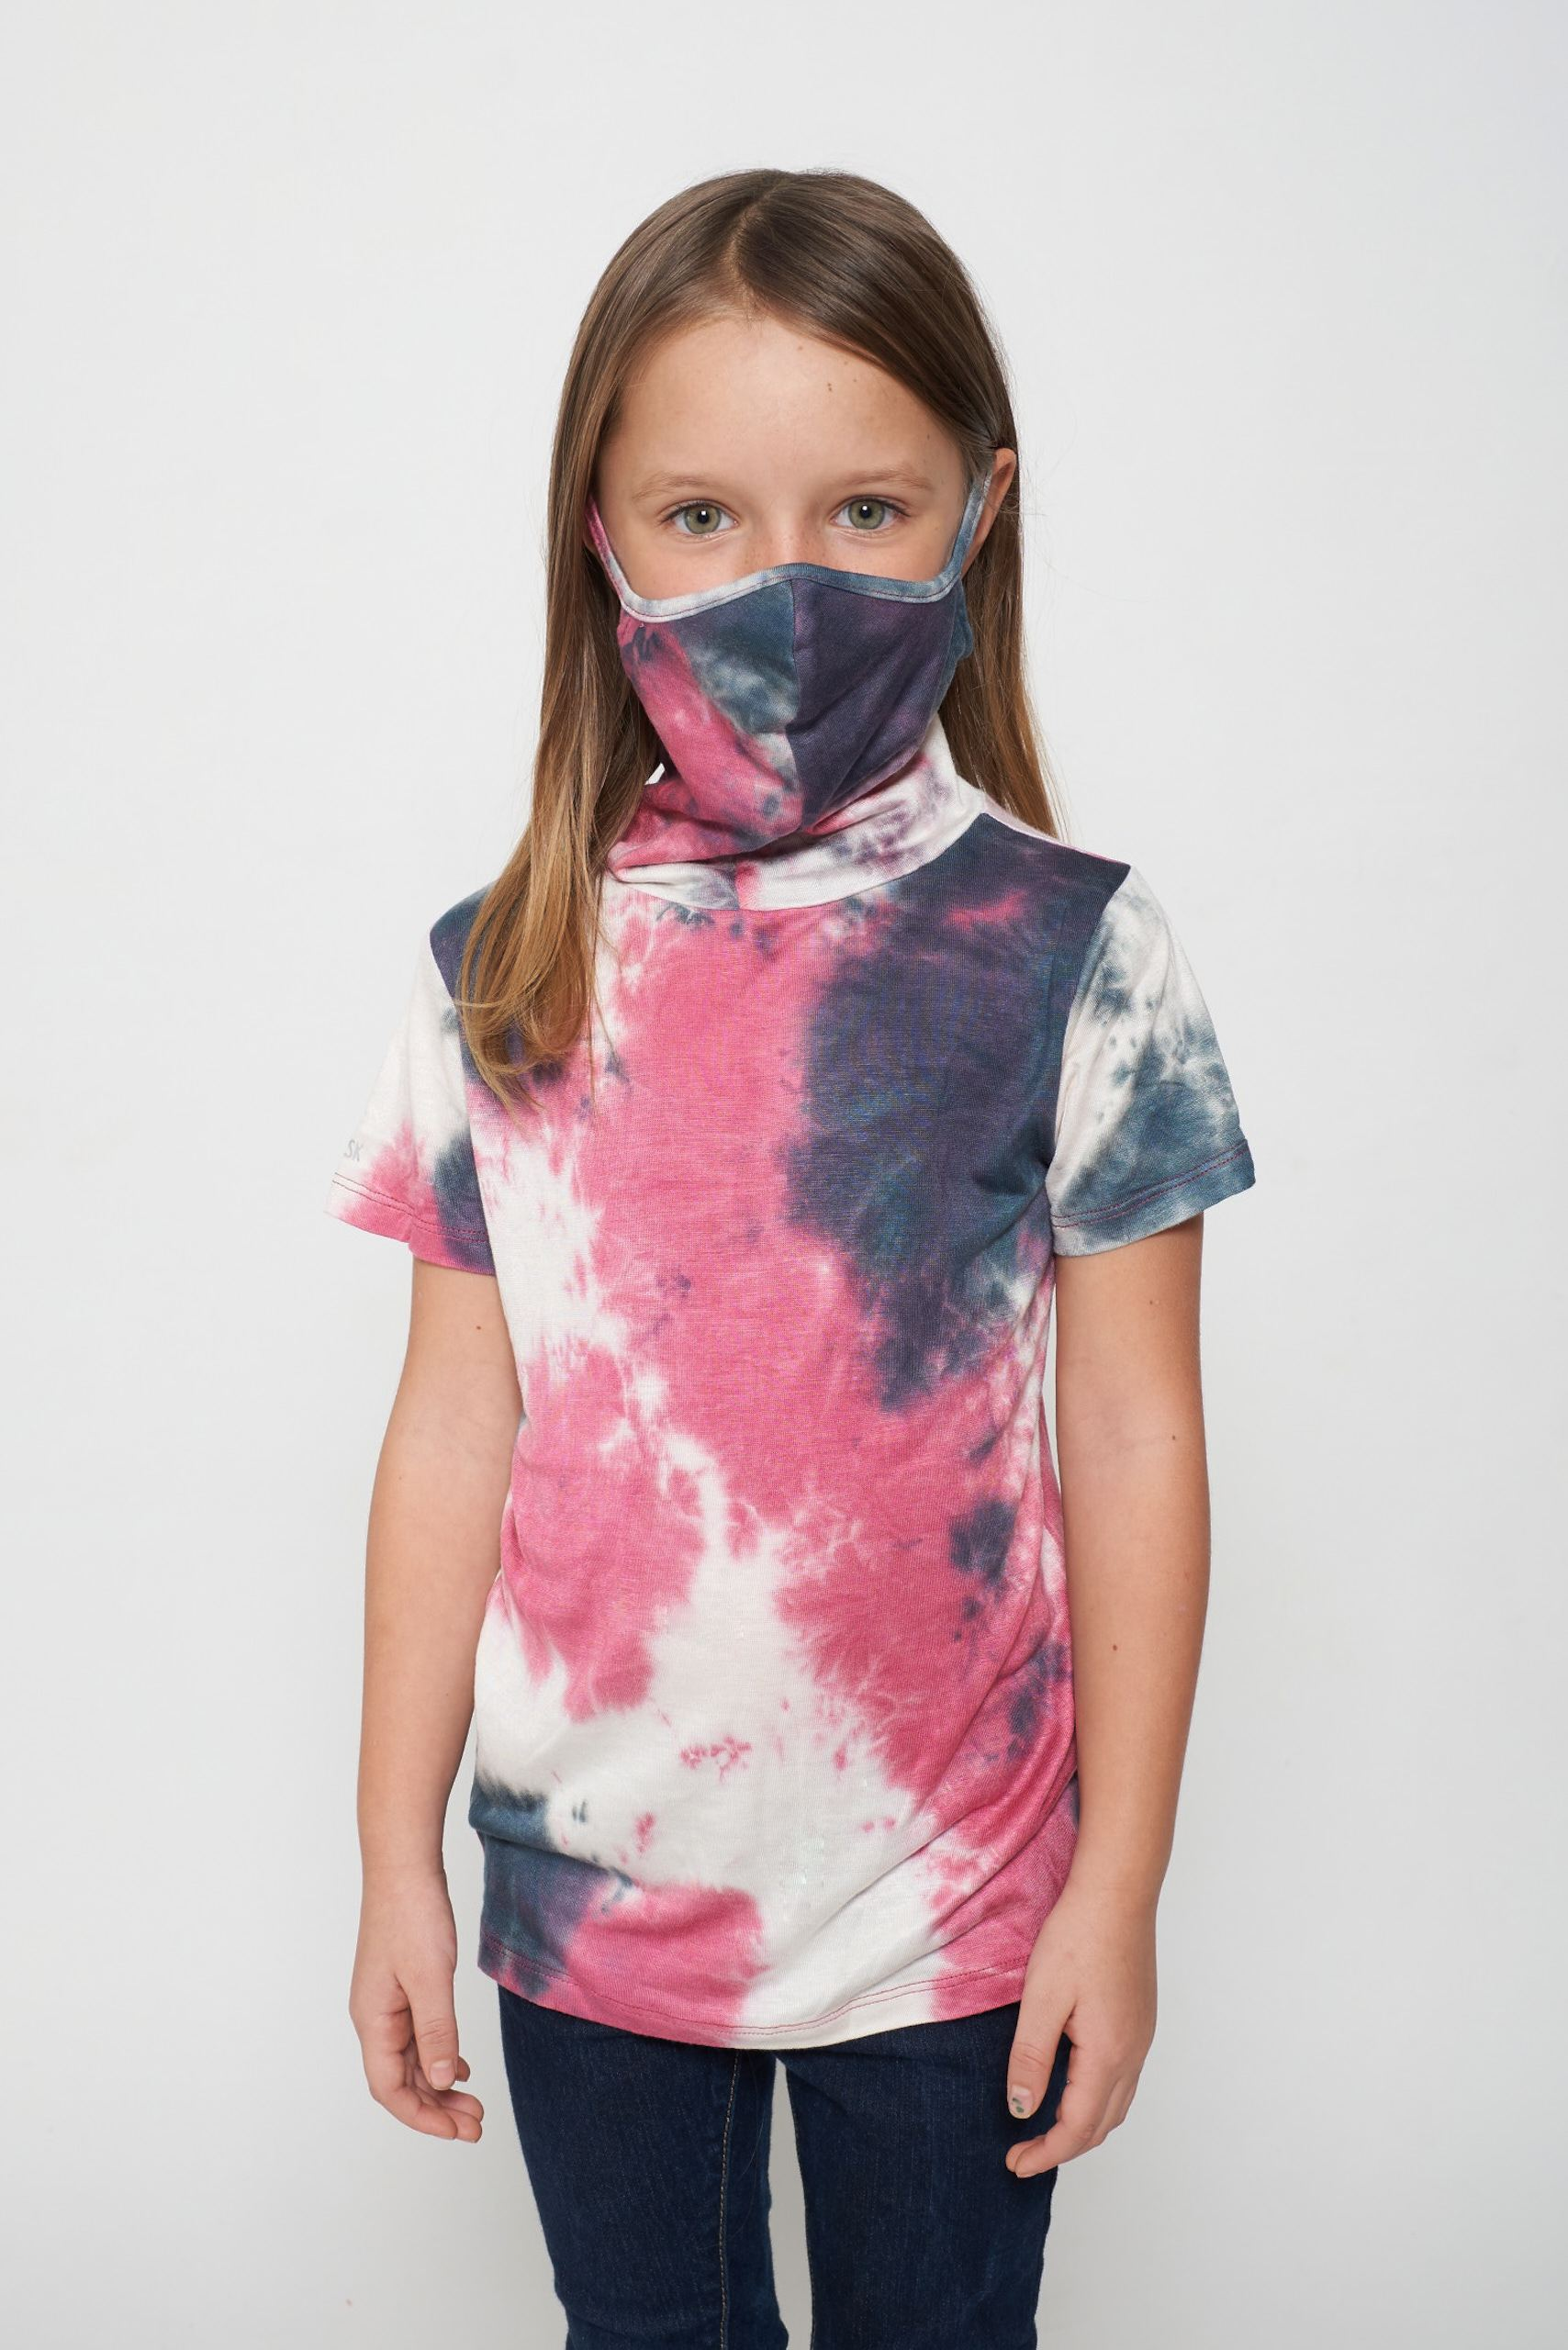 Kids Short Sleeve Pink White Blue Tie-dye #9 Shmask™ Earloop Face Mask for Kids and Adults